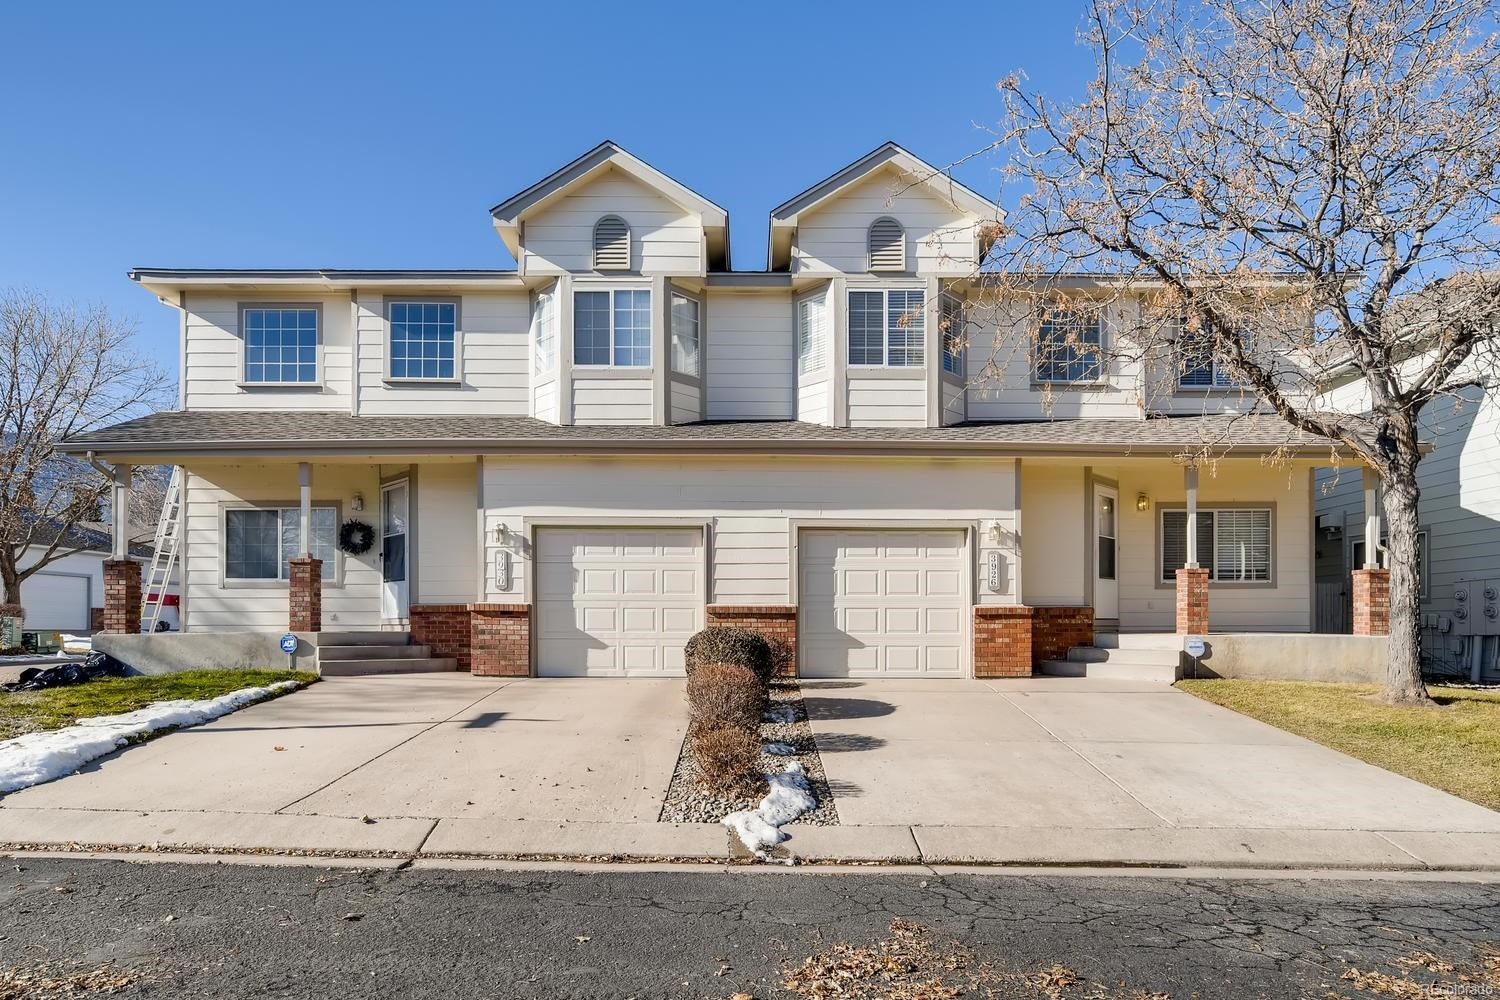 MLS# 7435178 - 1 - 3926 Christy Heights, Colorado Springs, CO 80906